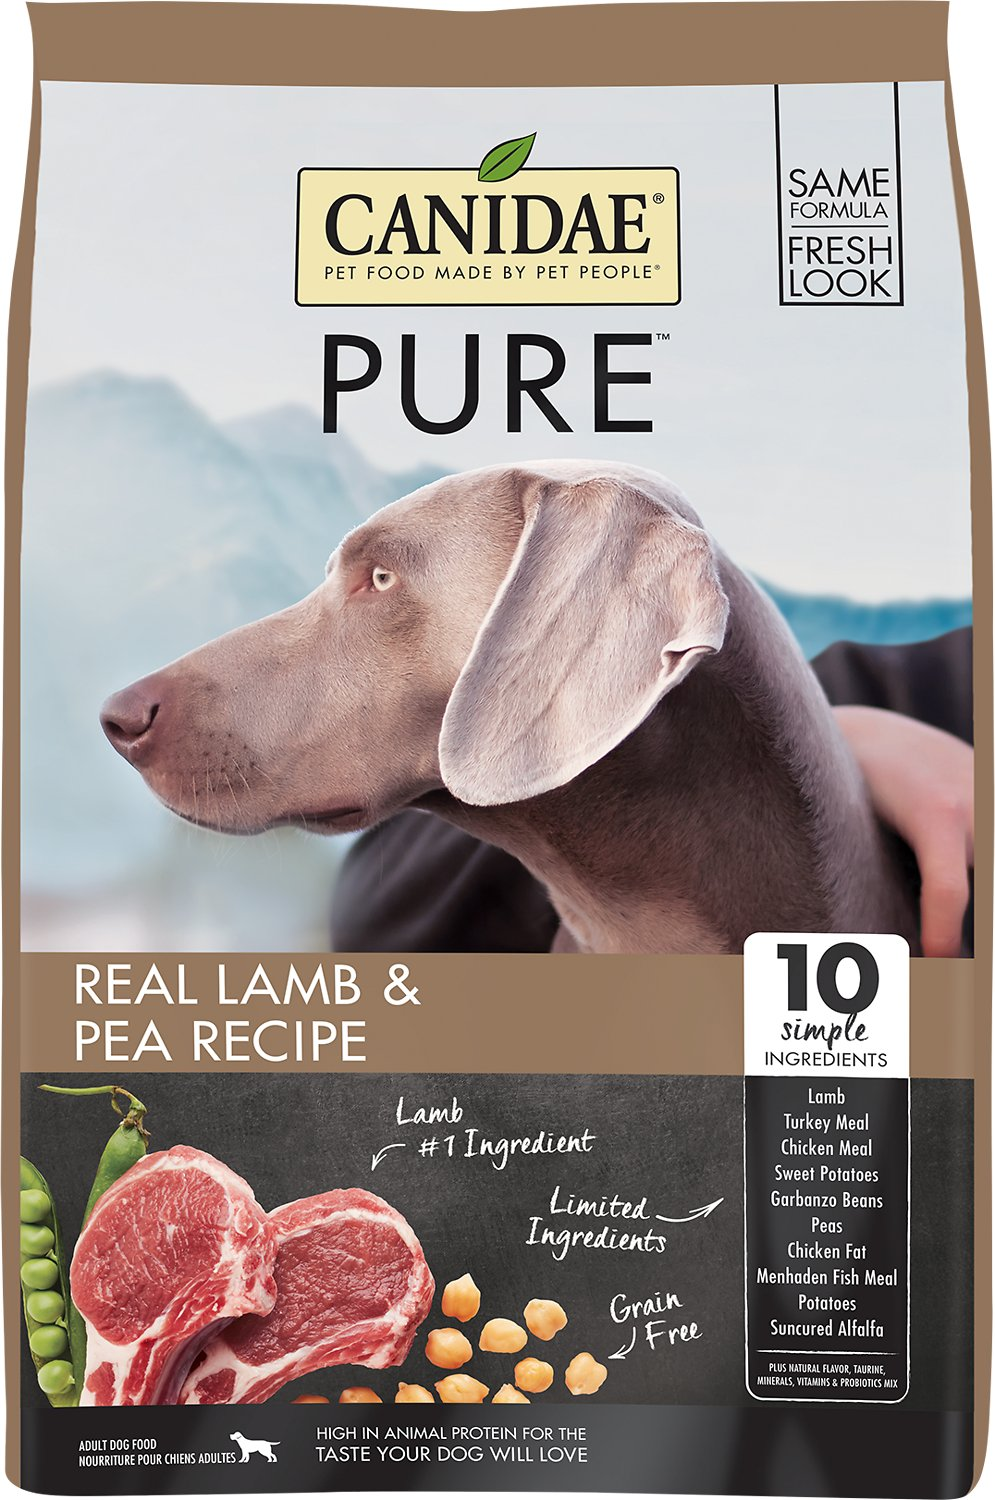 CANIDAE Grain-Free PURE Limited Ingredient Lamb & Pea Recipe Dry Dog Food